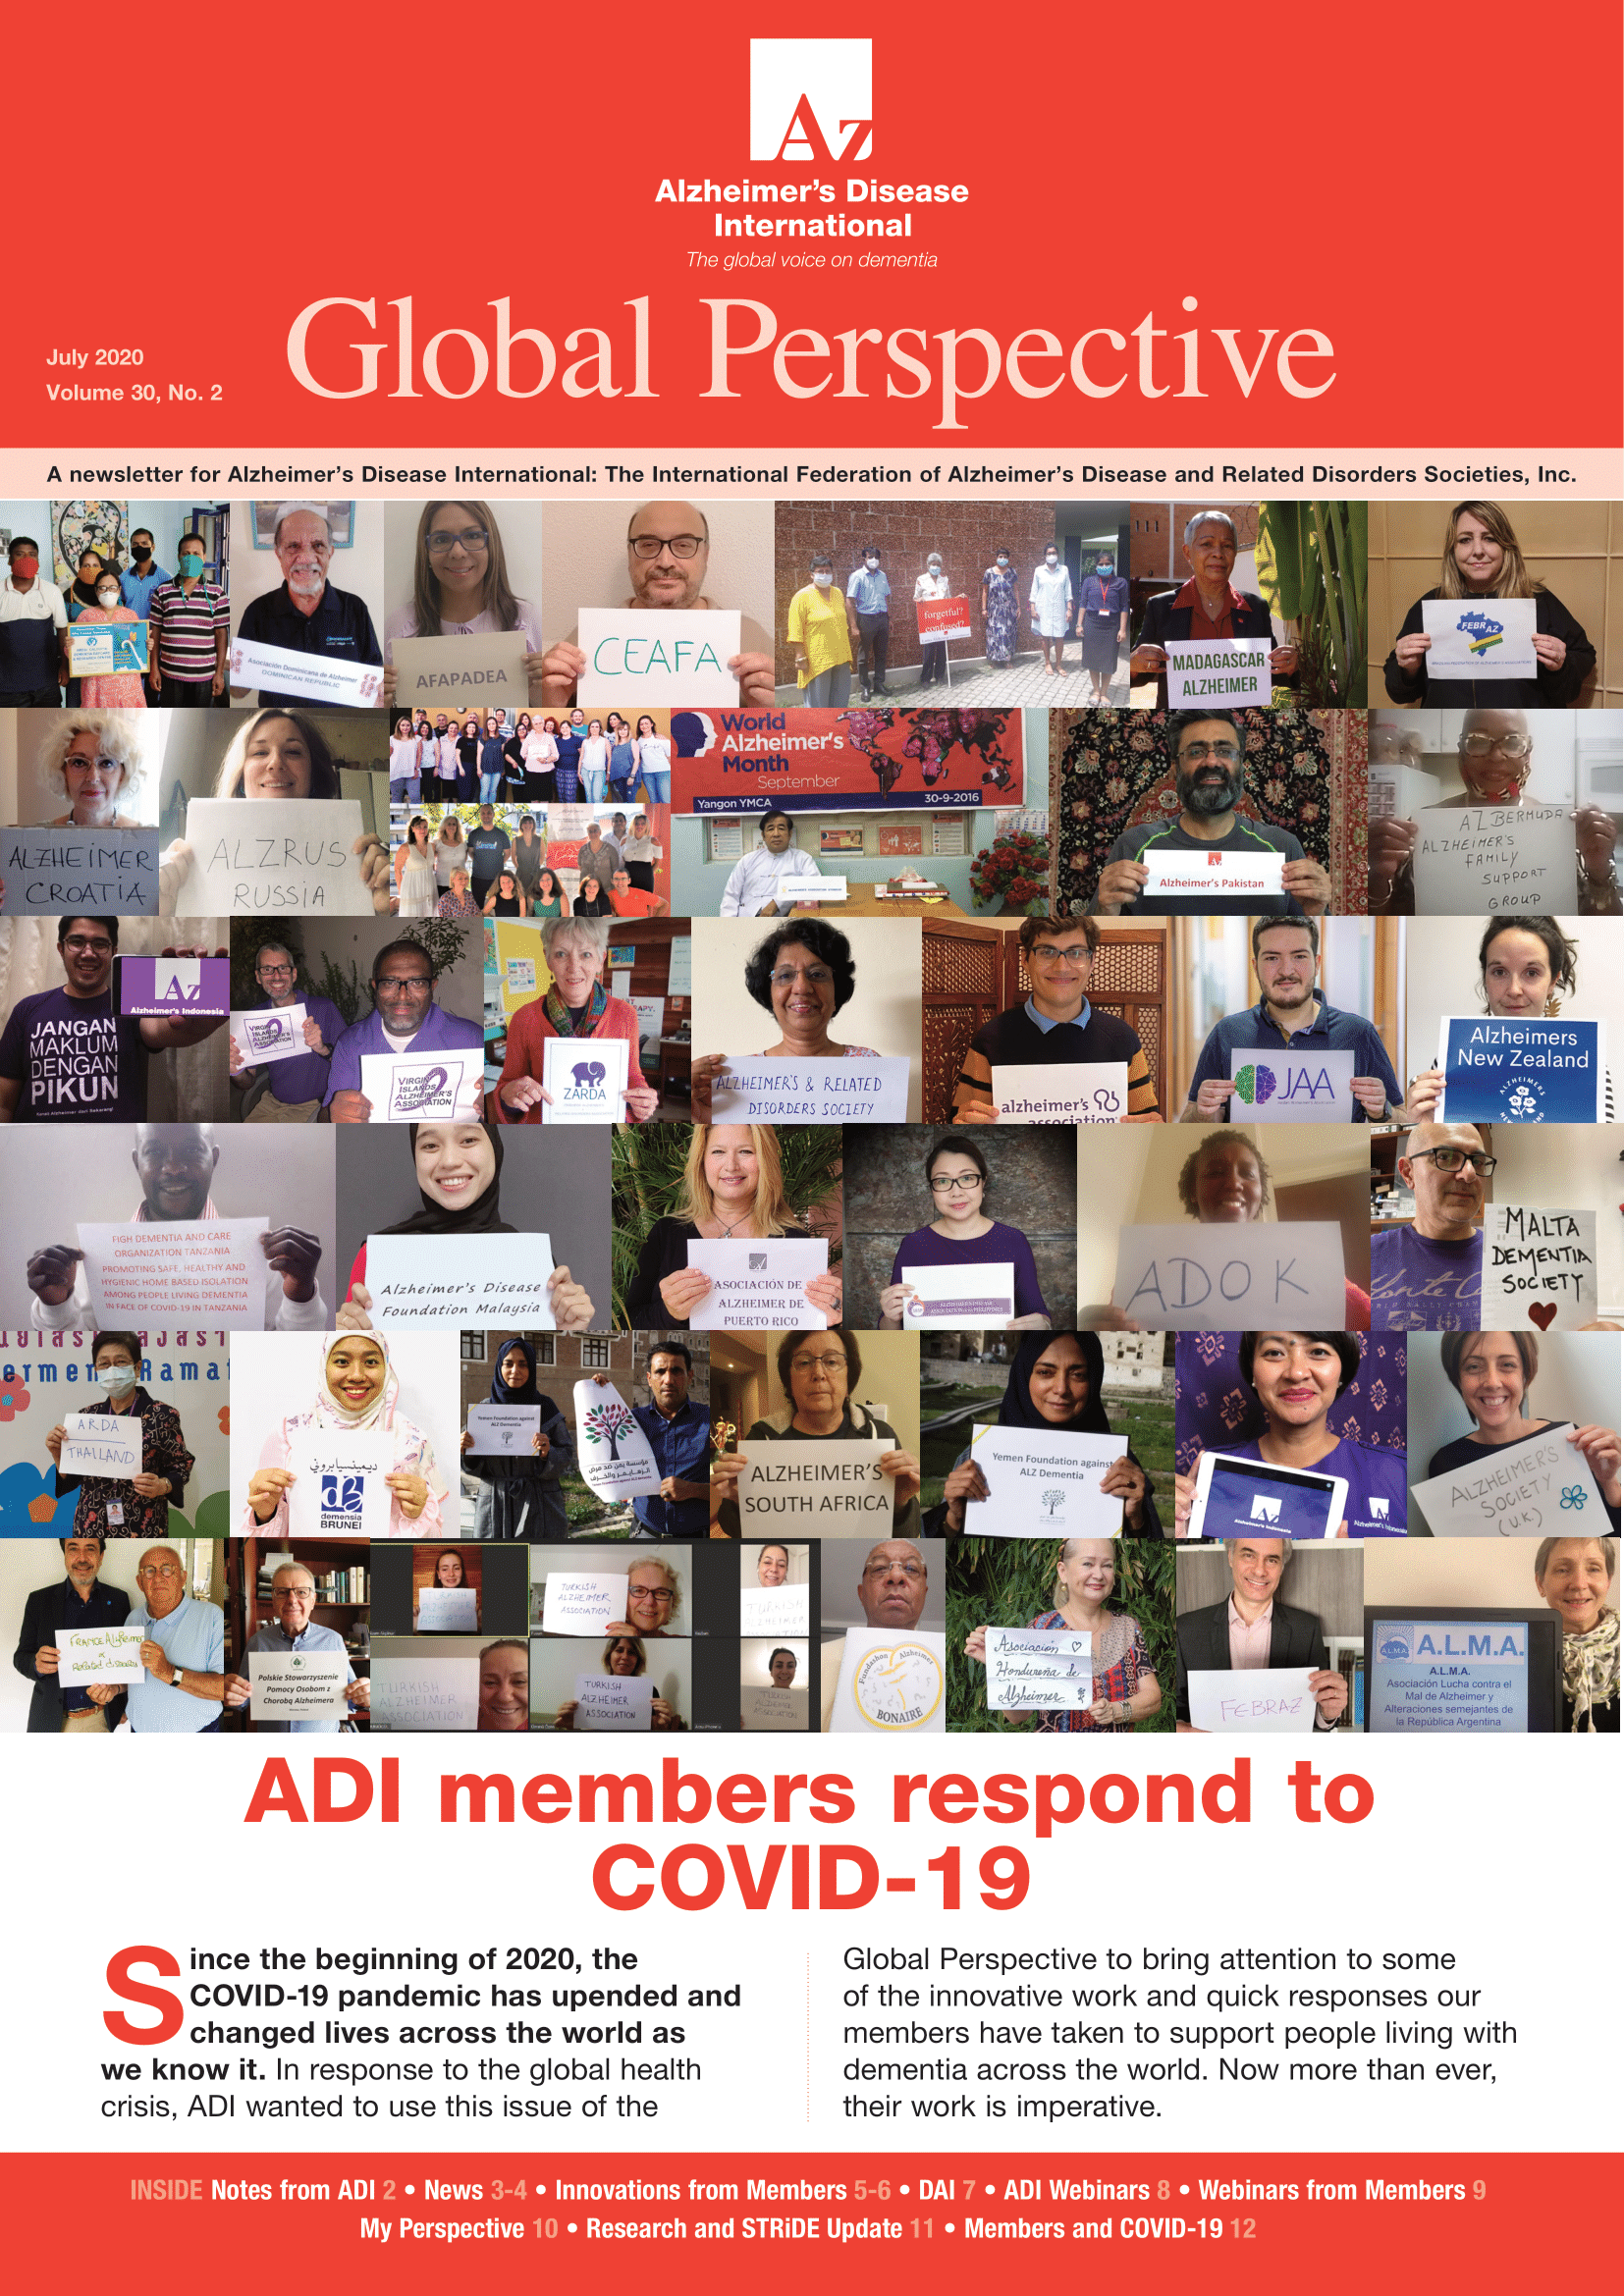 July 2020 Global Perspective